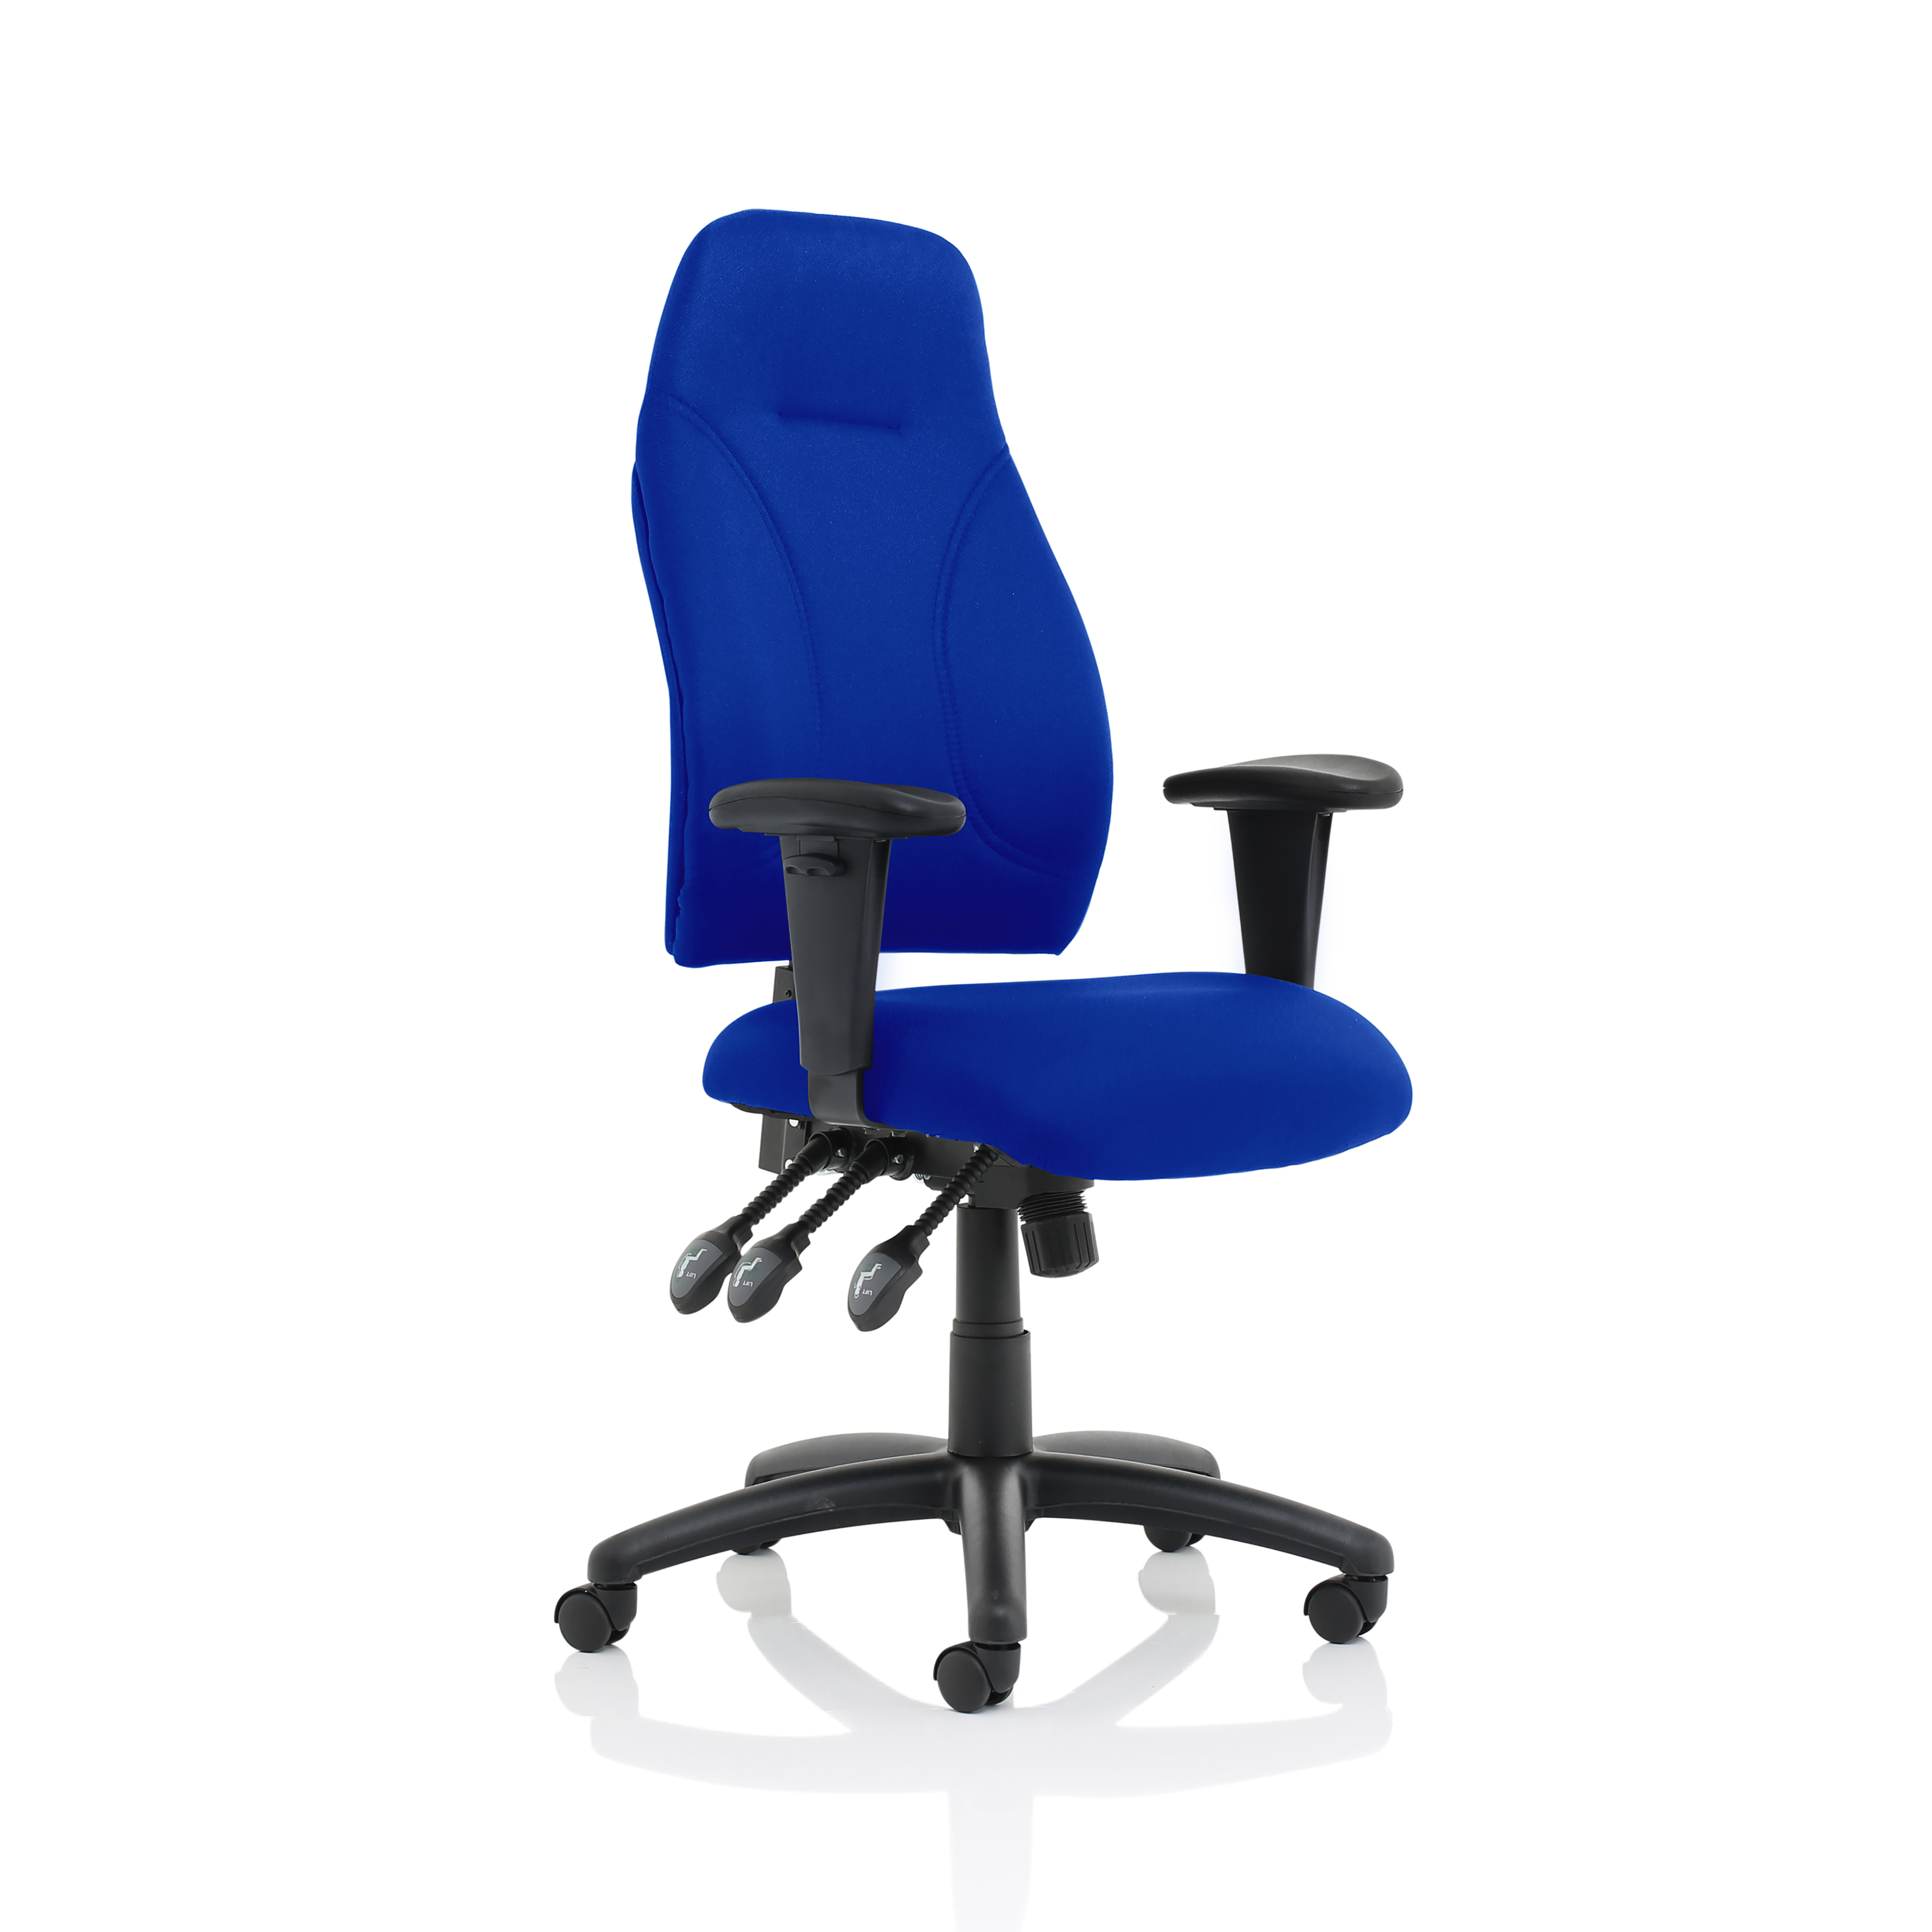 Task seating Trexus Posture High Back Asynchronous Chair Blue 500x500x420-530mm Ref SP413853